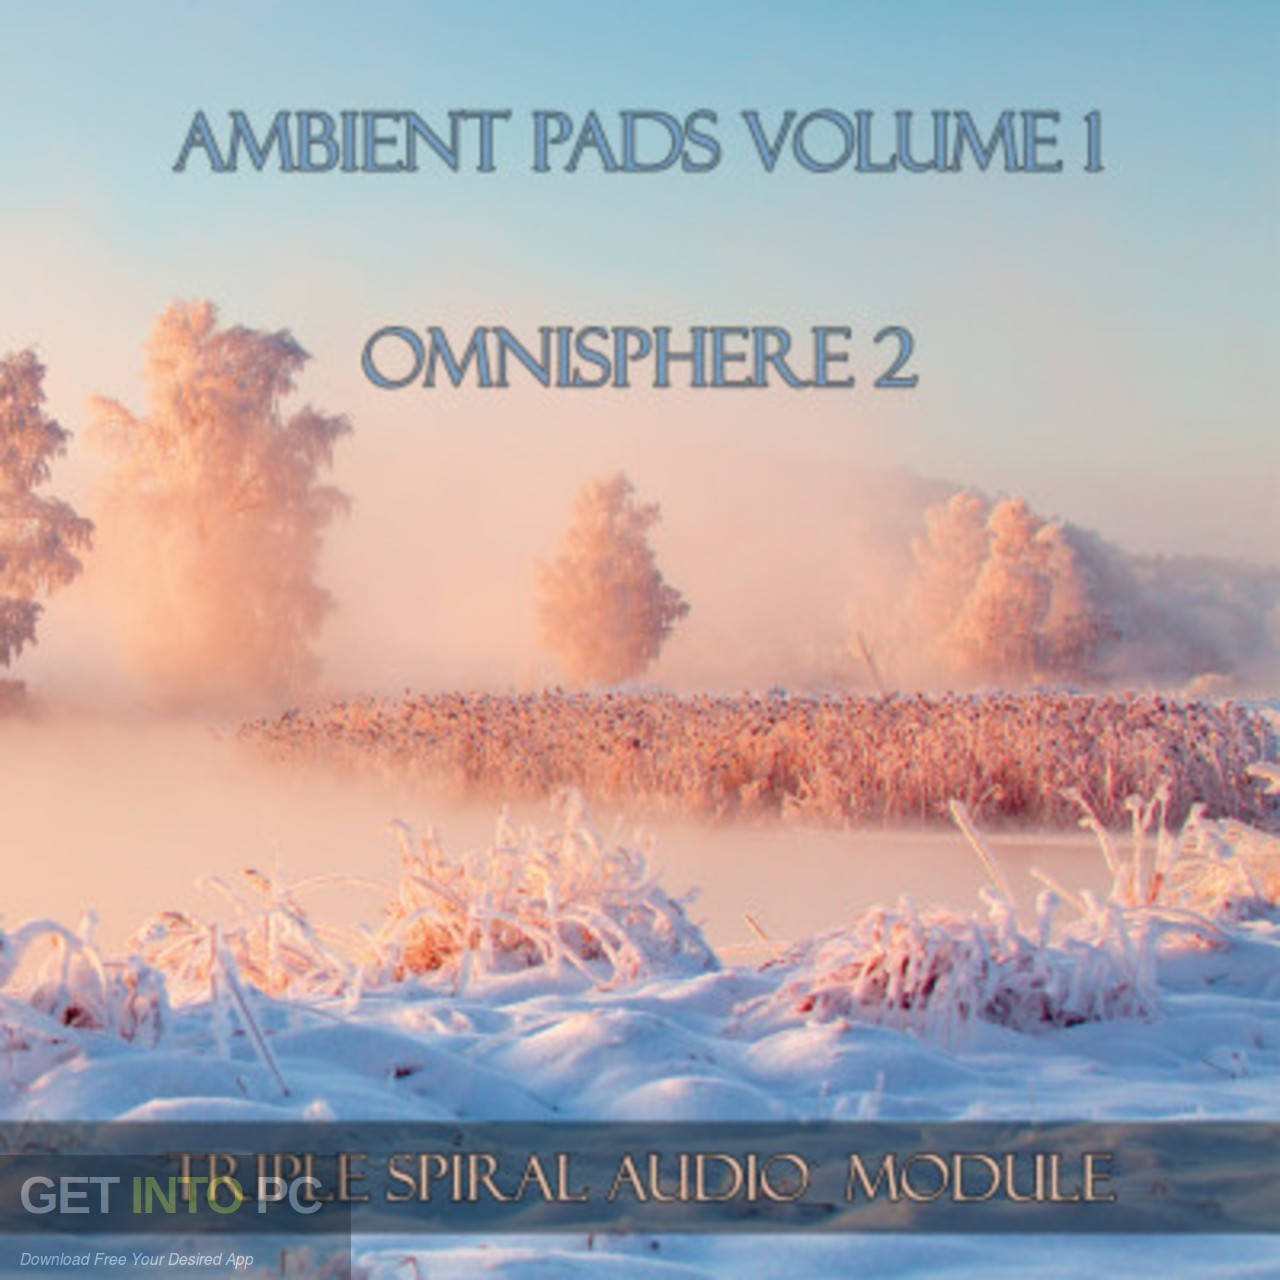 the Triple Spiral the Audio - the Ambient Pads (Omnisphere) Free Download